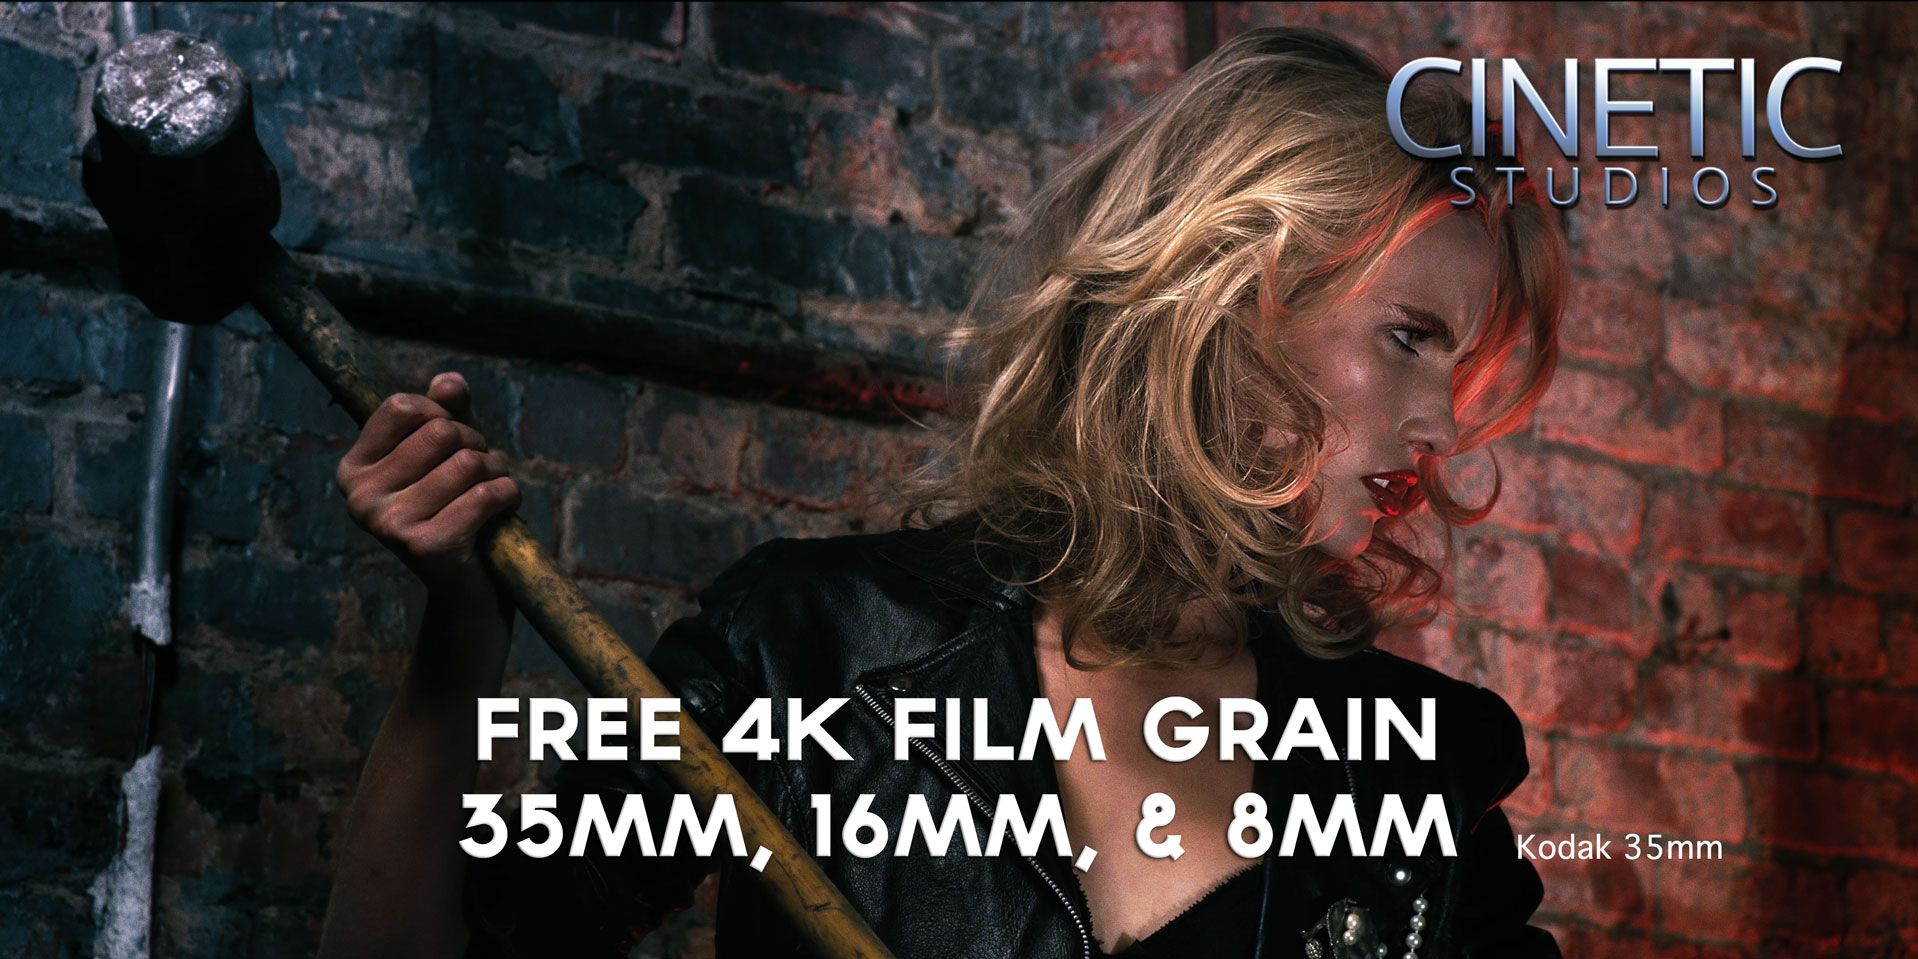 4k Film Grain - A Public Experiment with Free Stock Footage